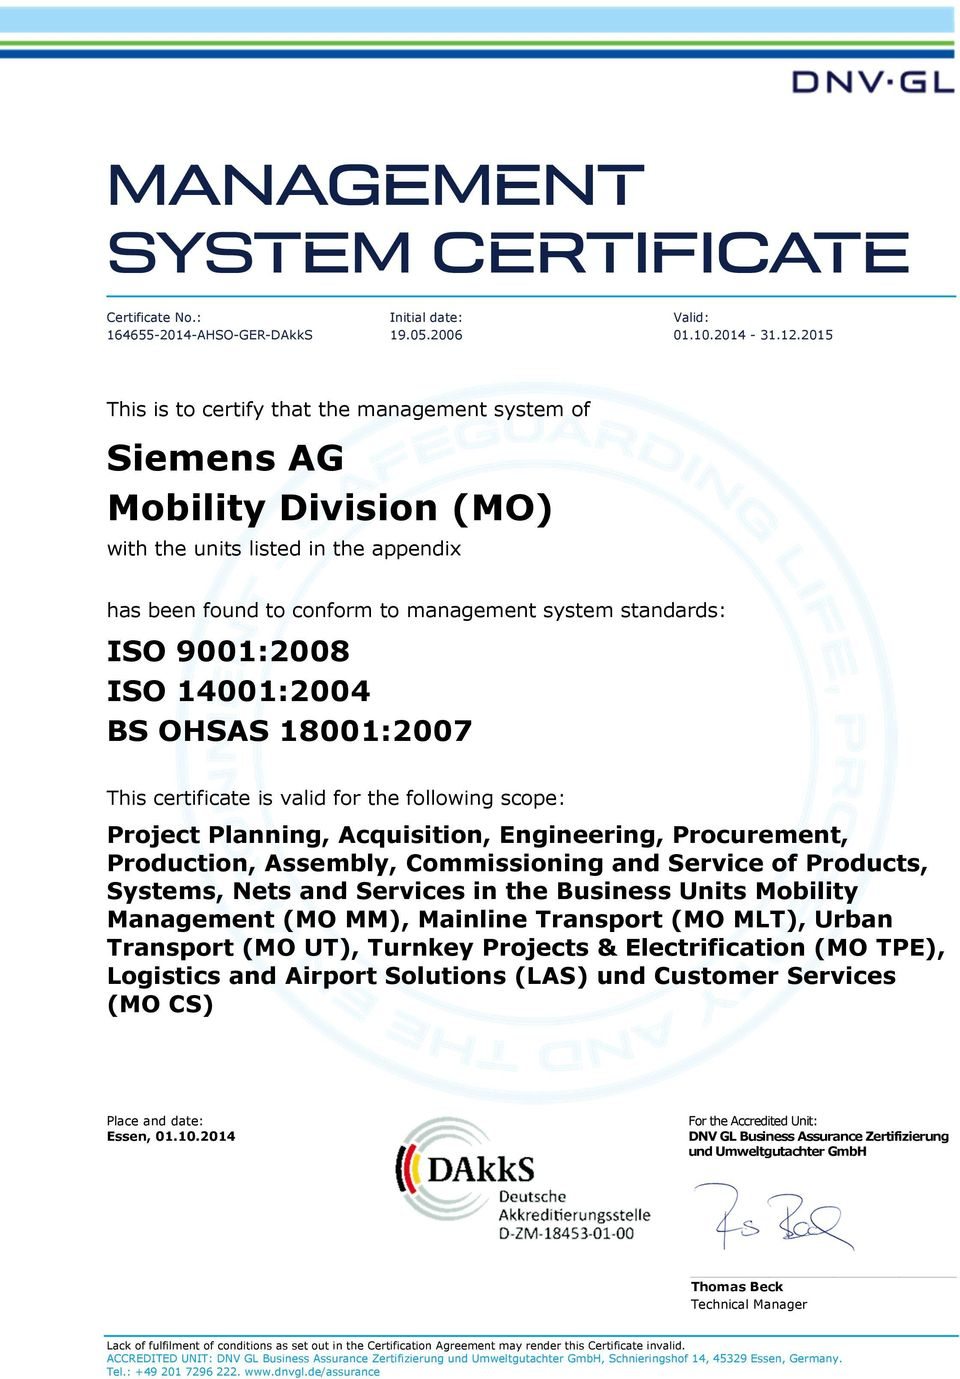 This certificate is valid for the following scope: Project Planning, Acquisition, Engineering, Procurement, Production, Assembly, Commissioning and Service of Products, Systems, Nets and Services in